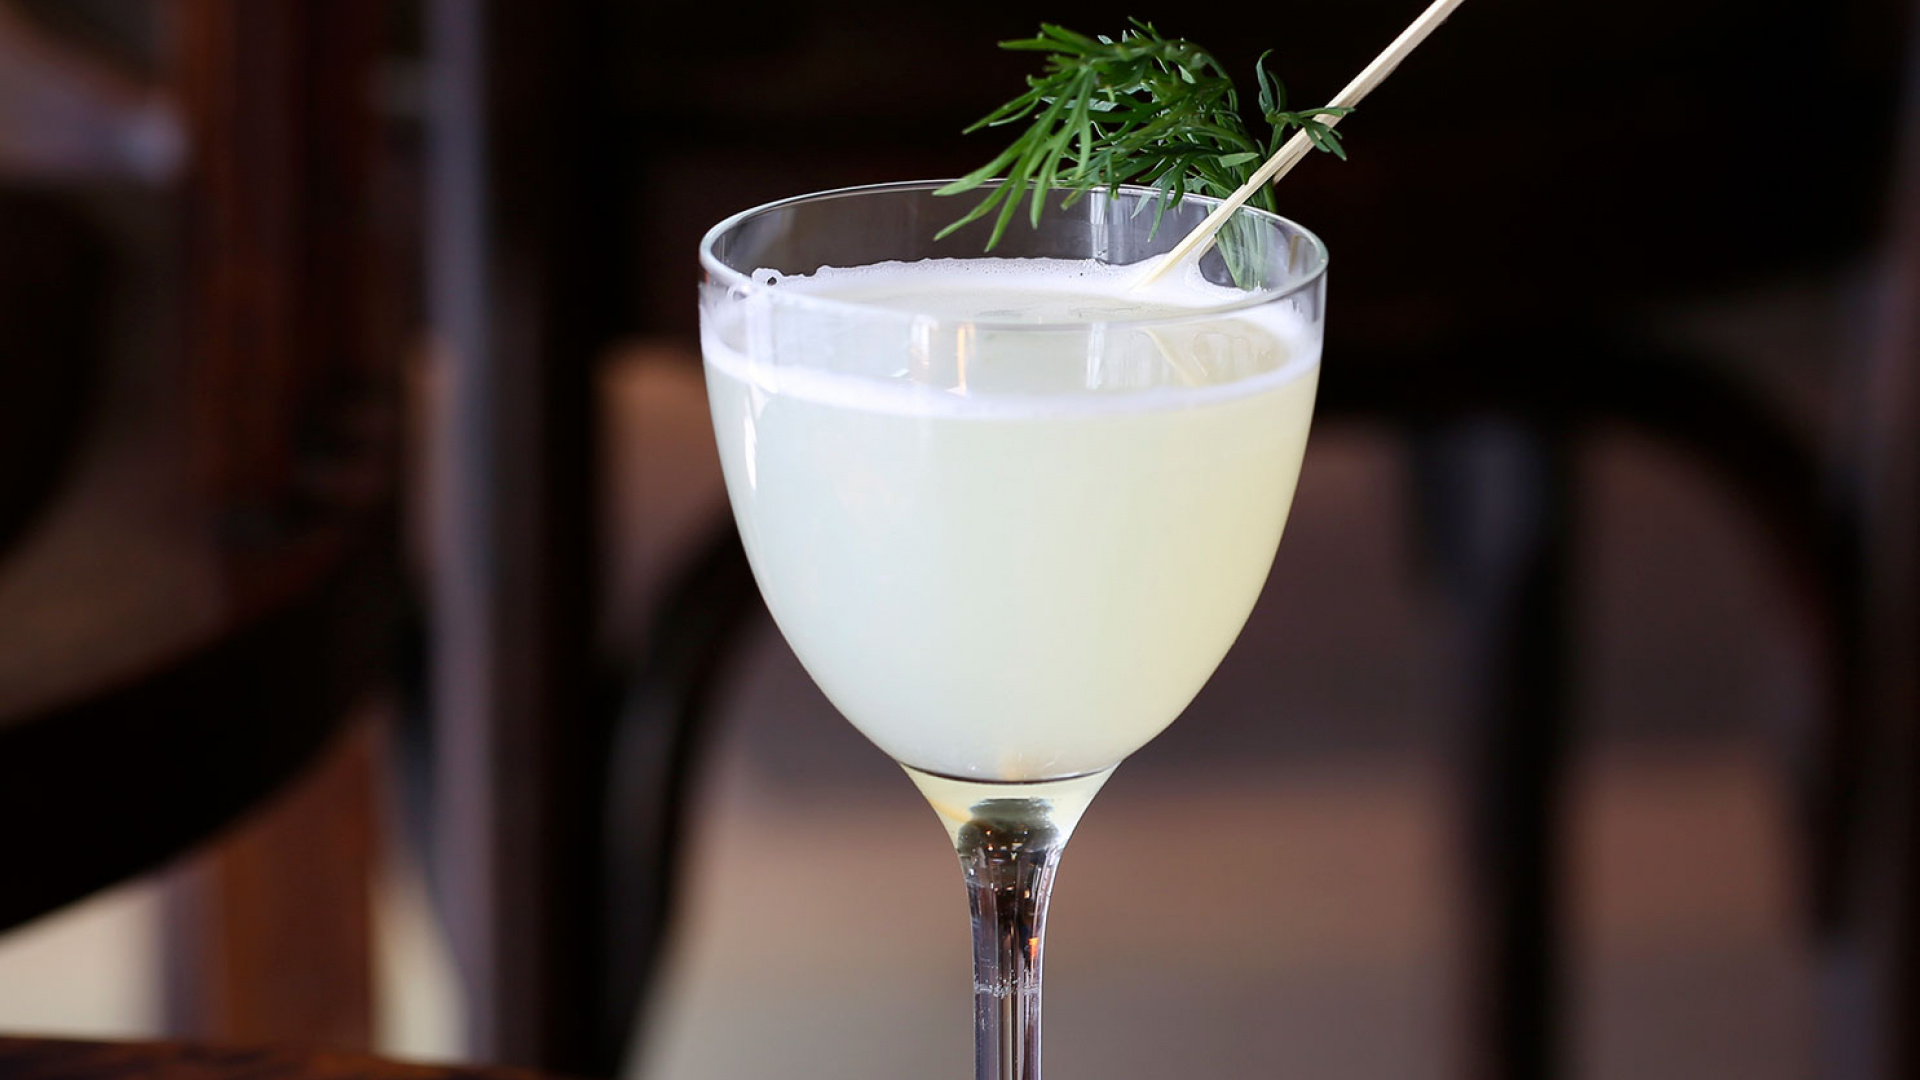 Social Eating House's Dill Or No Dill cocktail